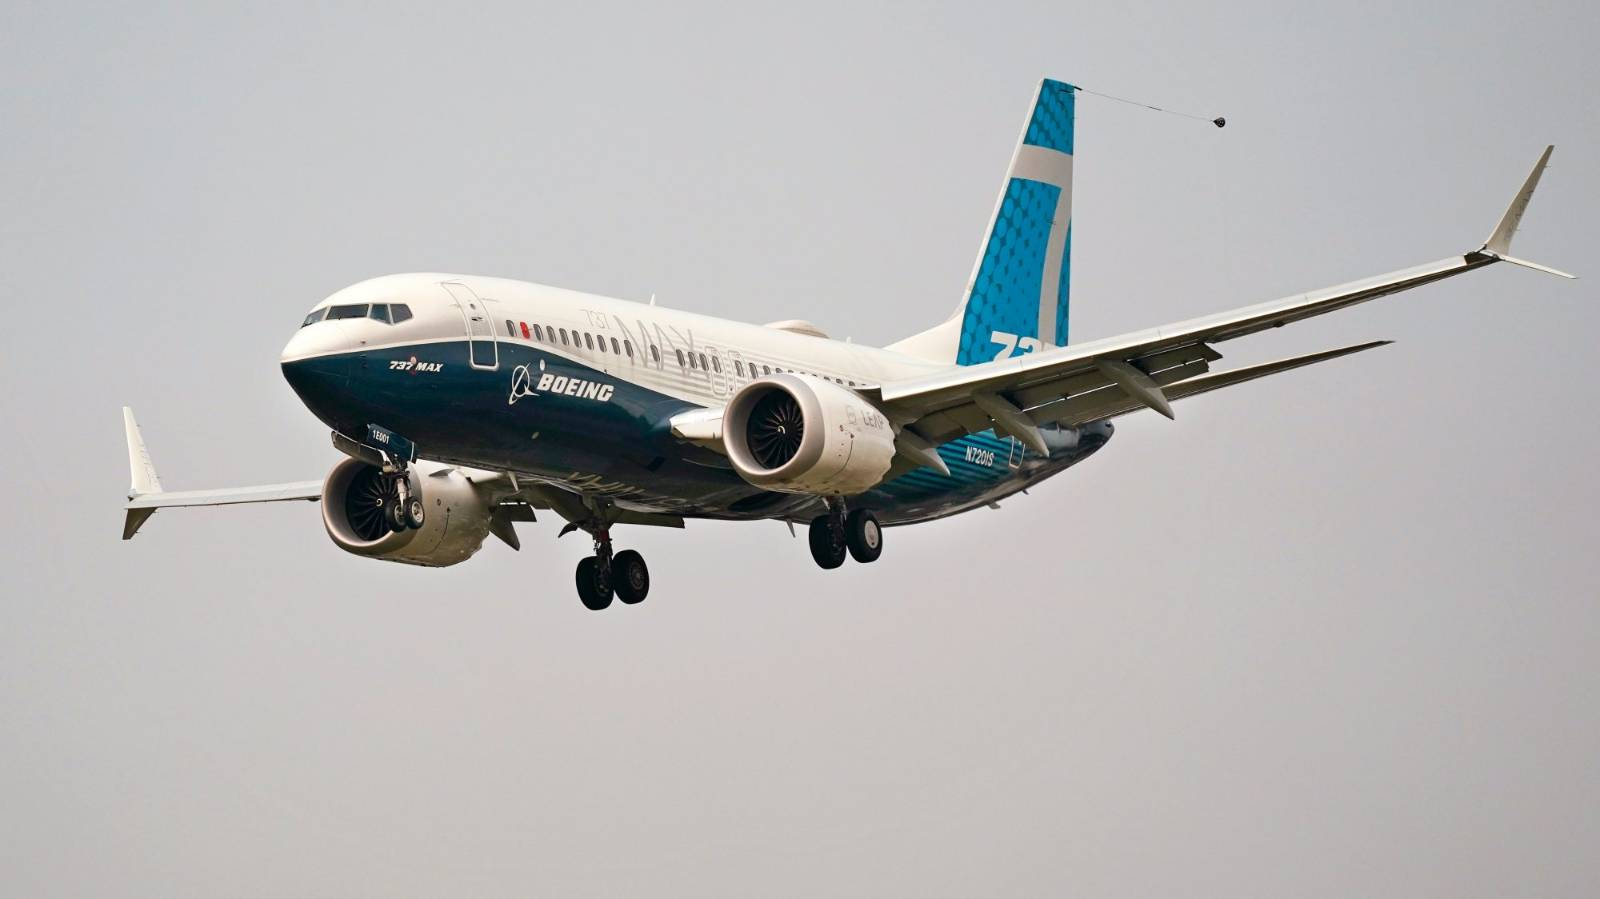 Civil Aviation Authority 'carefully reviewing' return of 737 Max